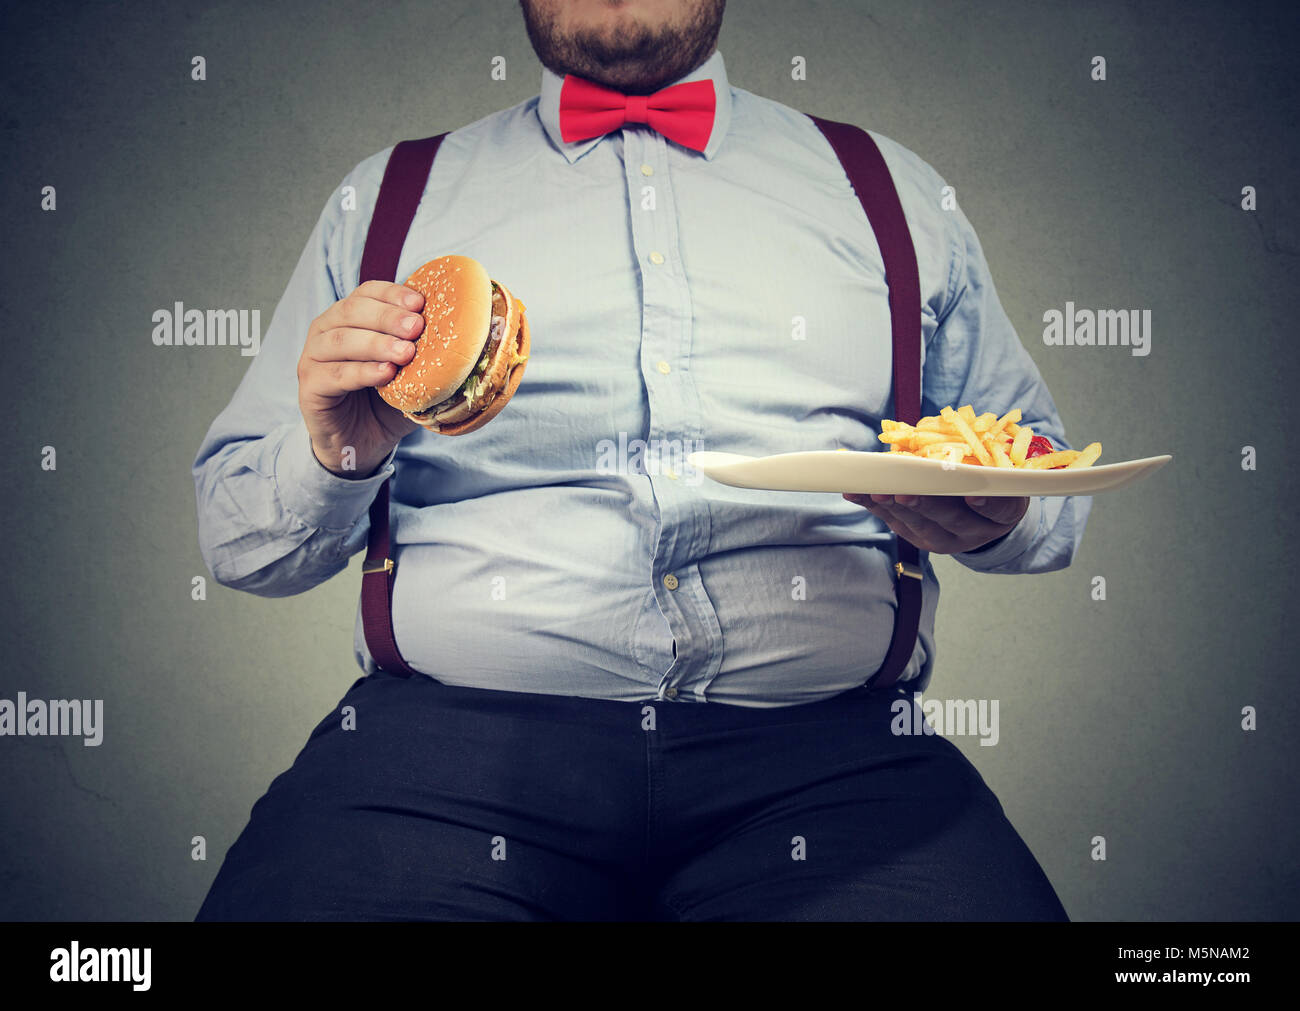 Crop shot of big man in formal clothes sitting and consuming plate with fast food on gray. - Stock Image